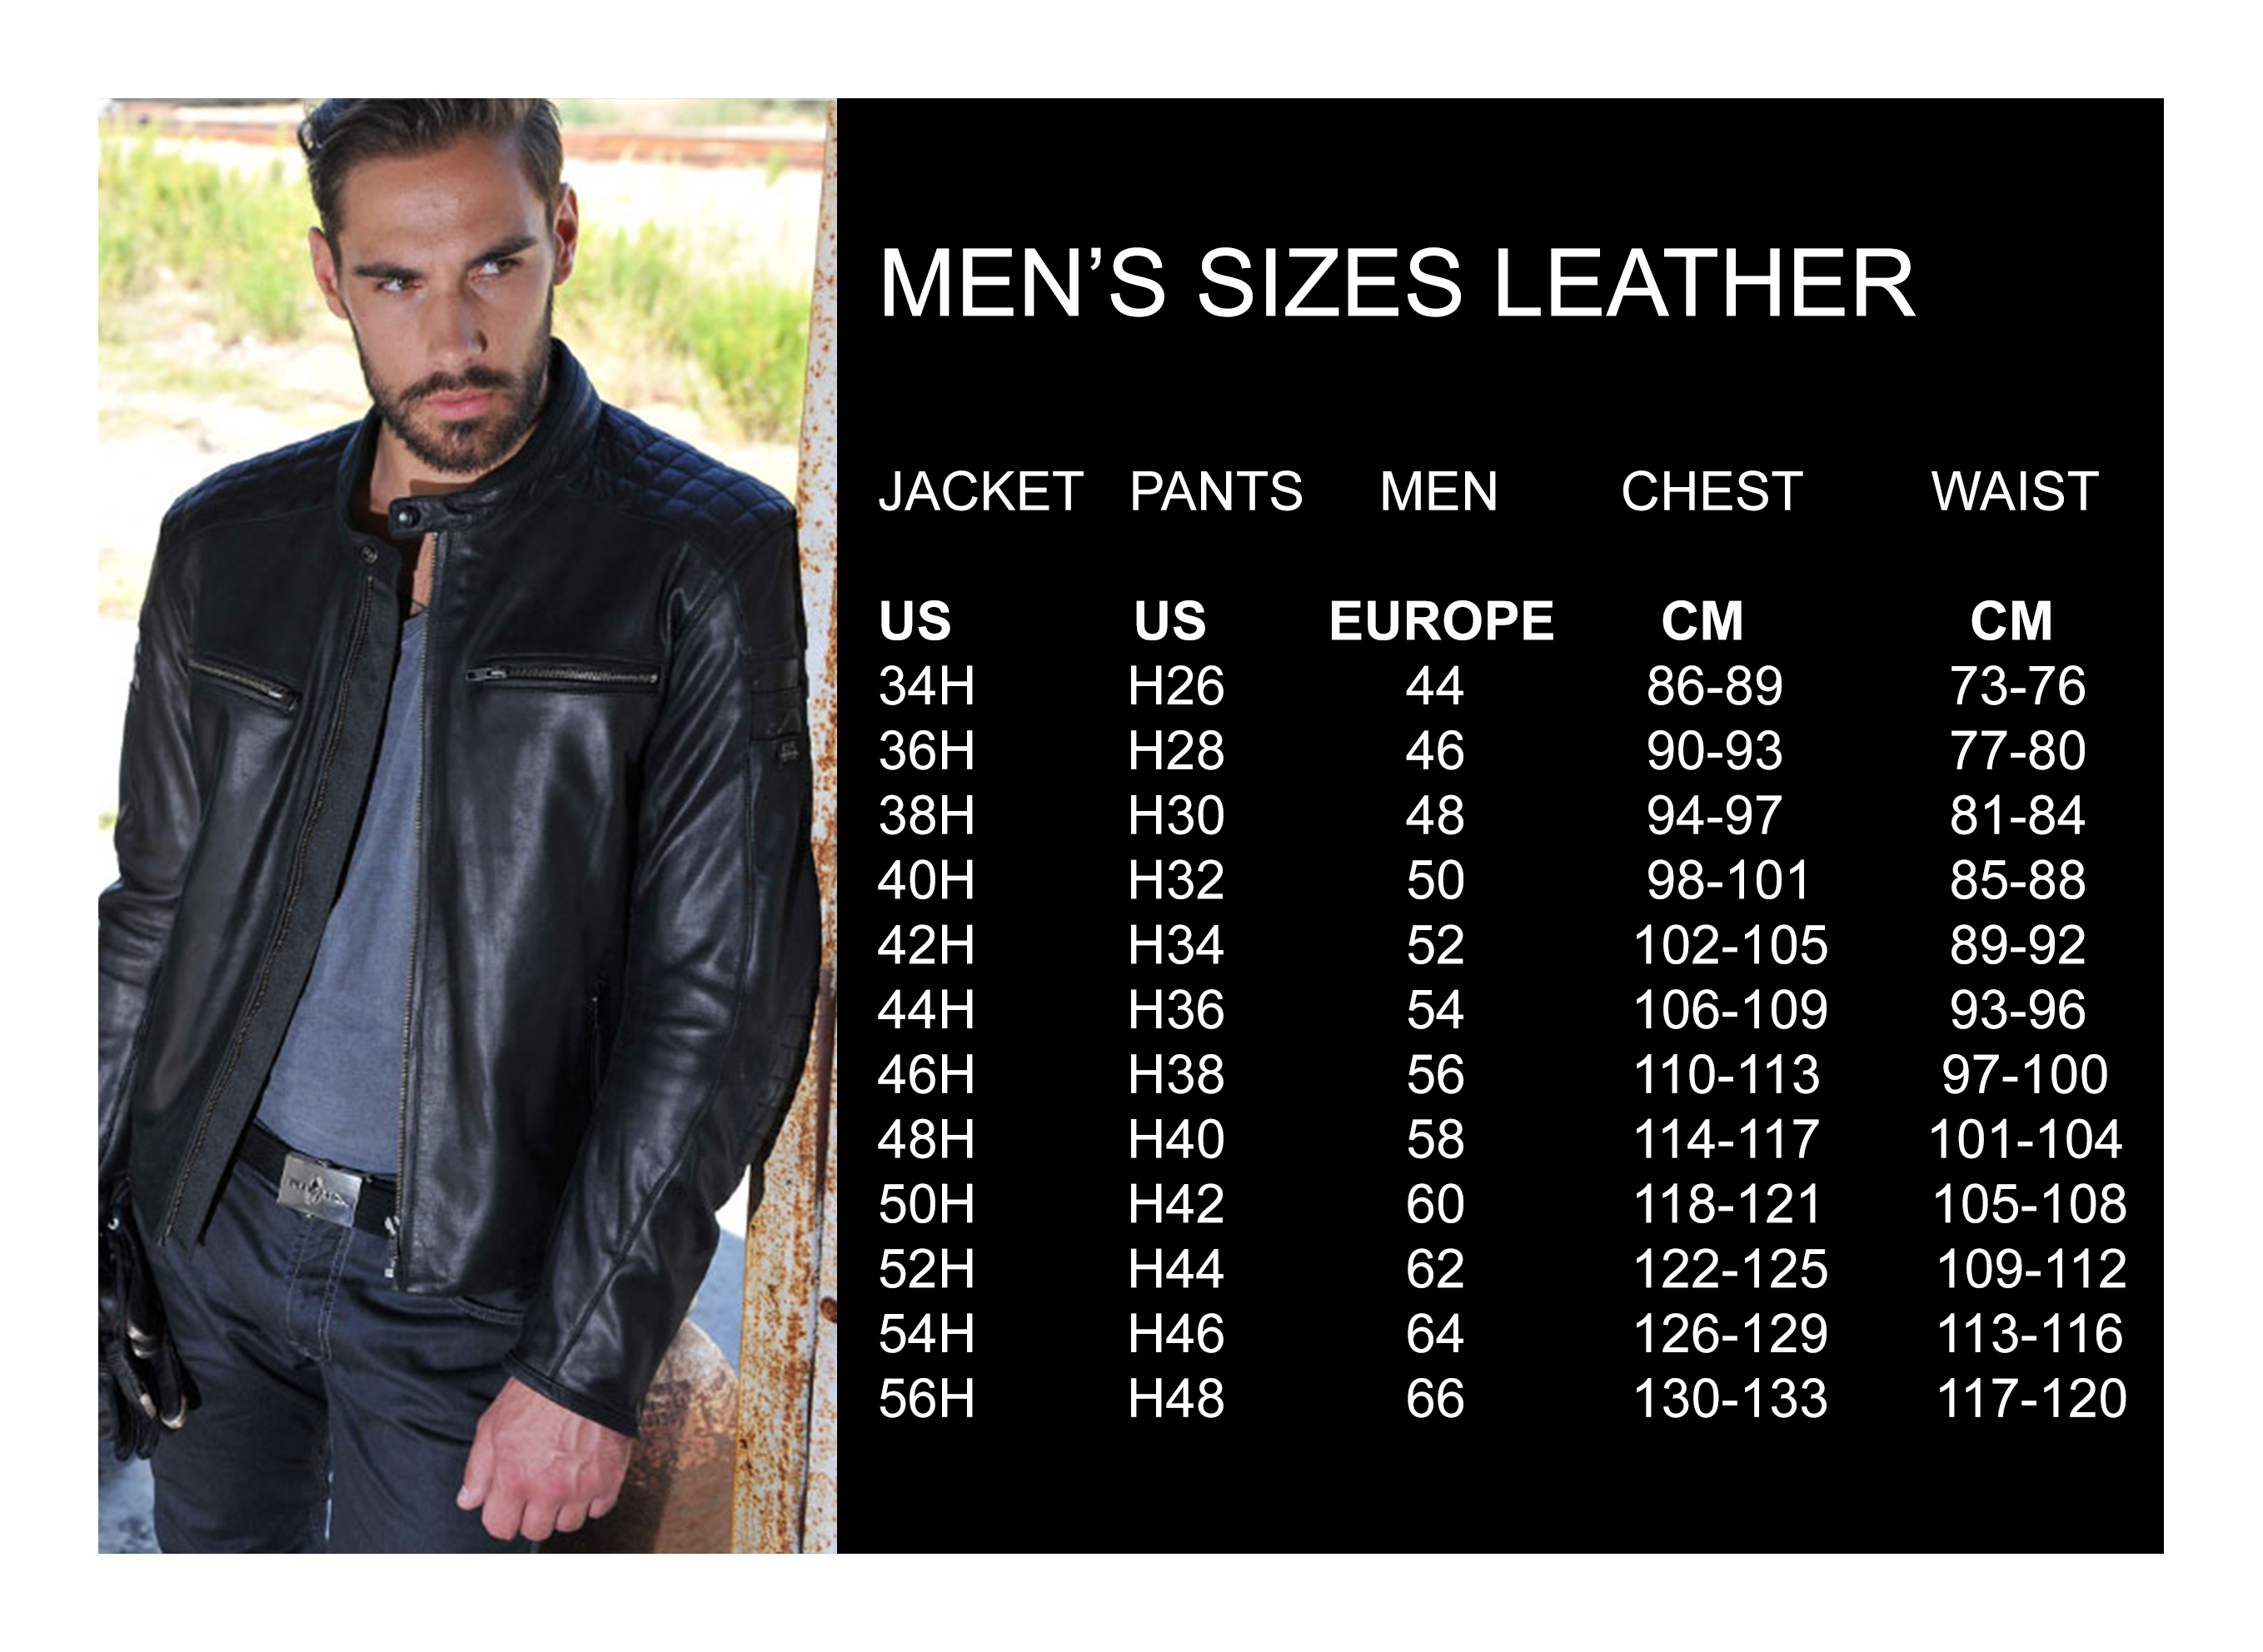 Men's sizes leather